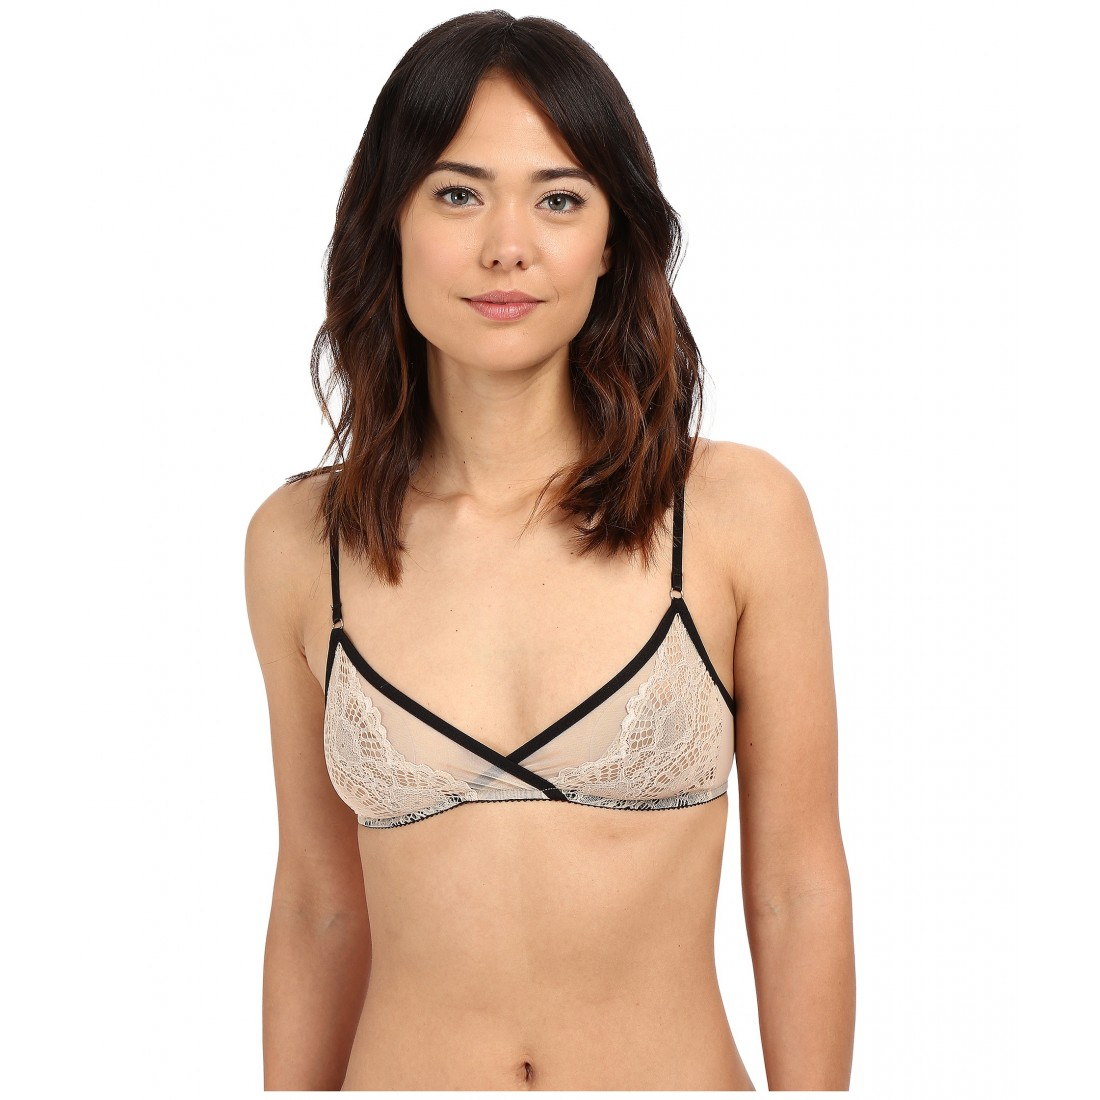 7c16f1b7f4 Only Hearts Whisper Sweet Nothings Triangle Bralette ZPSKU 8731129  Nude Black